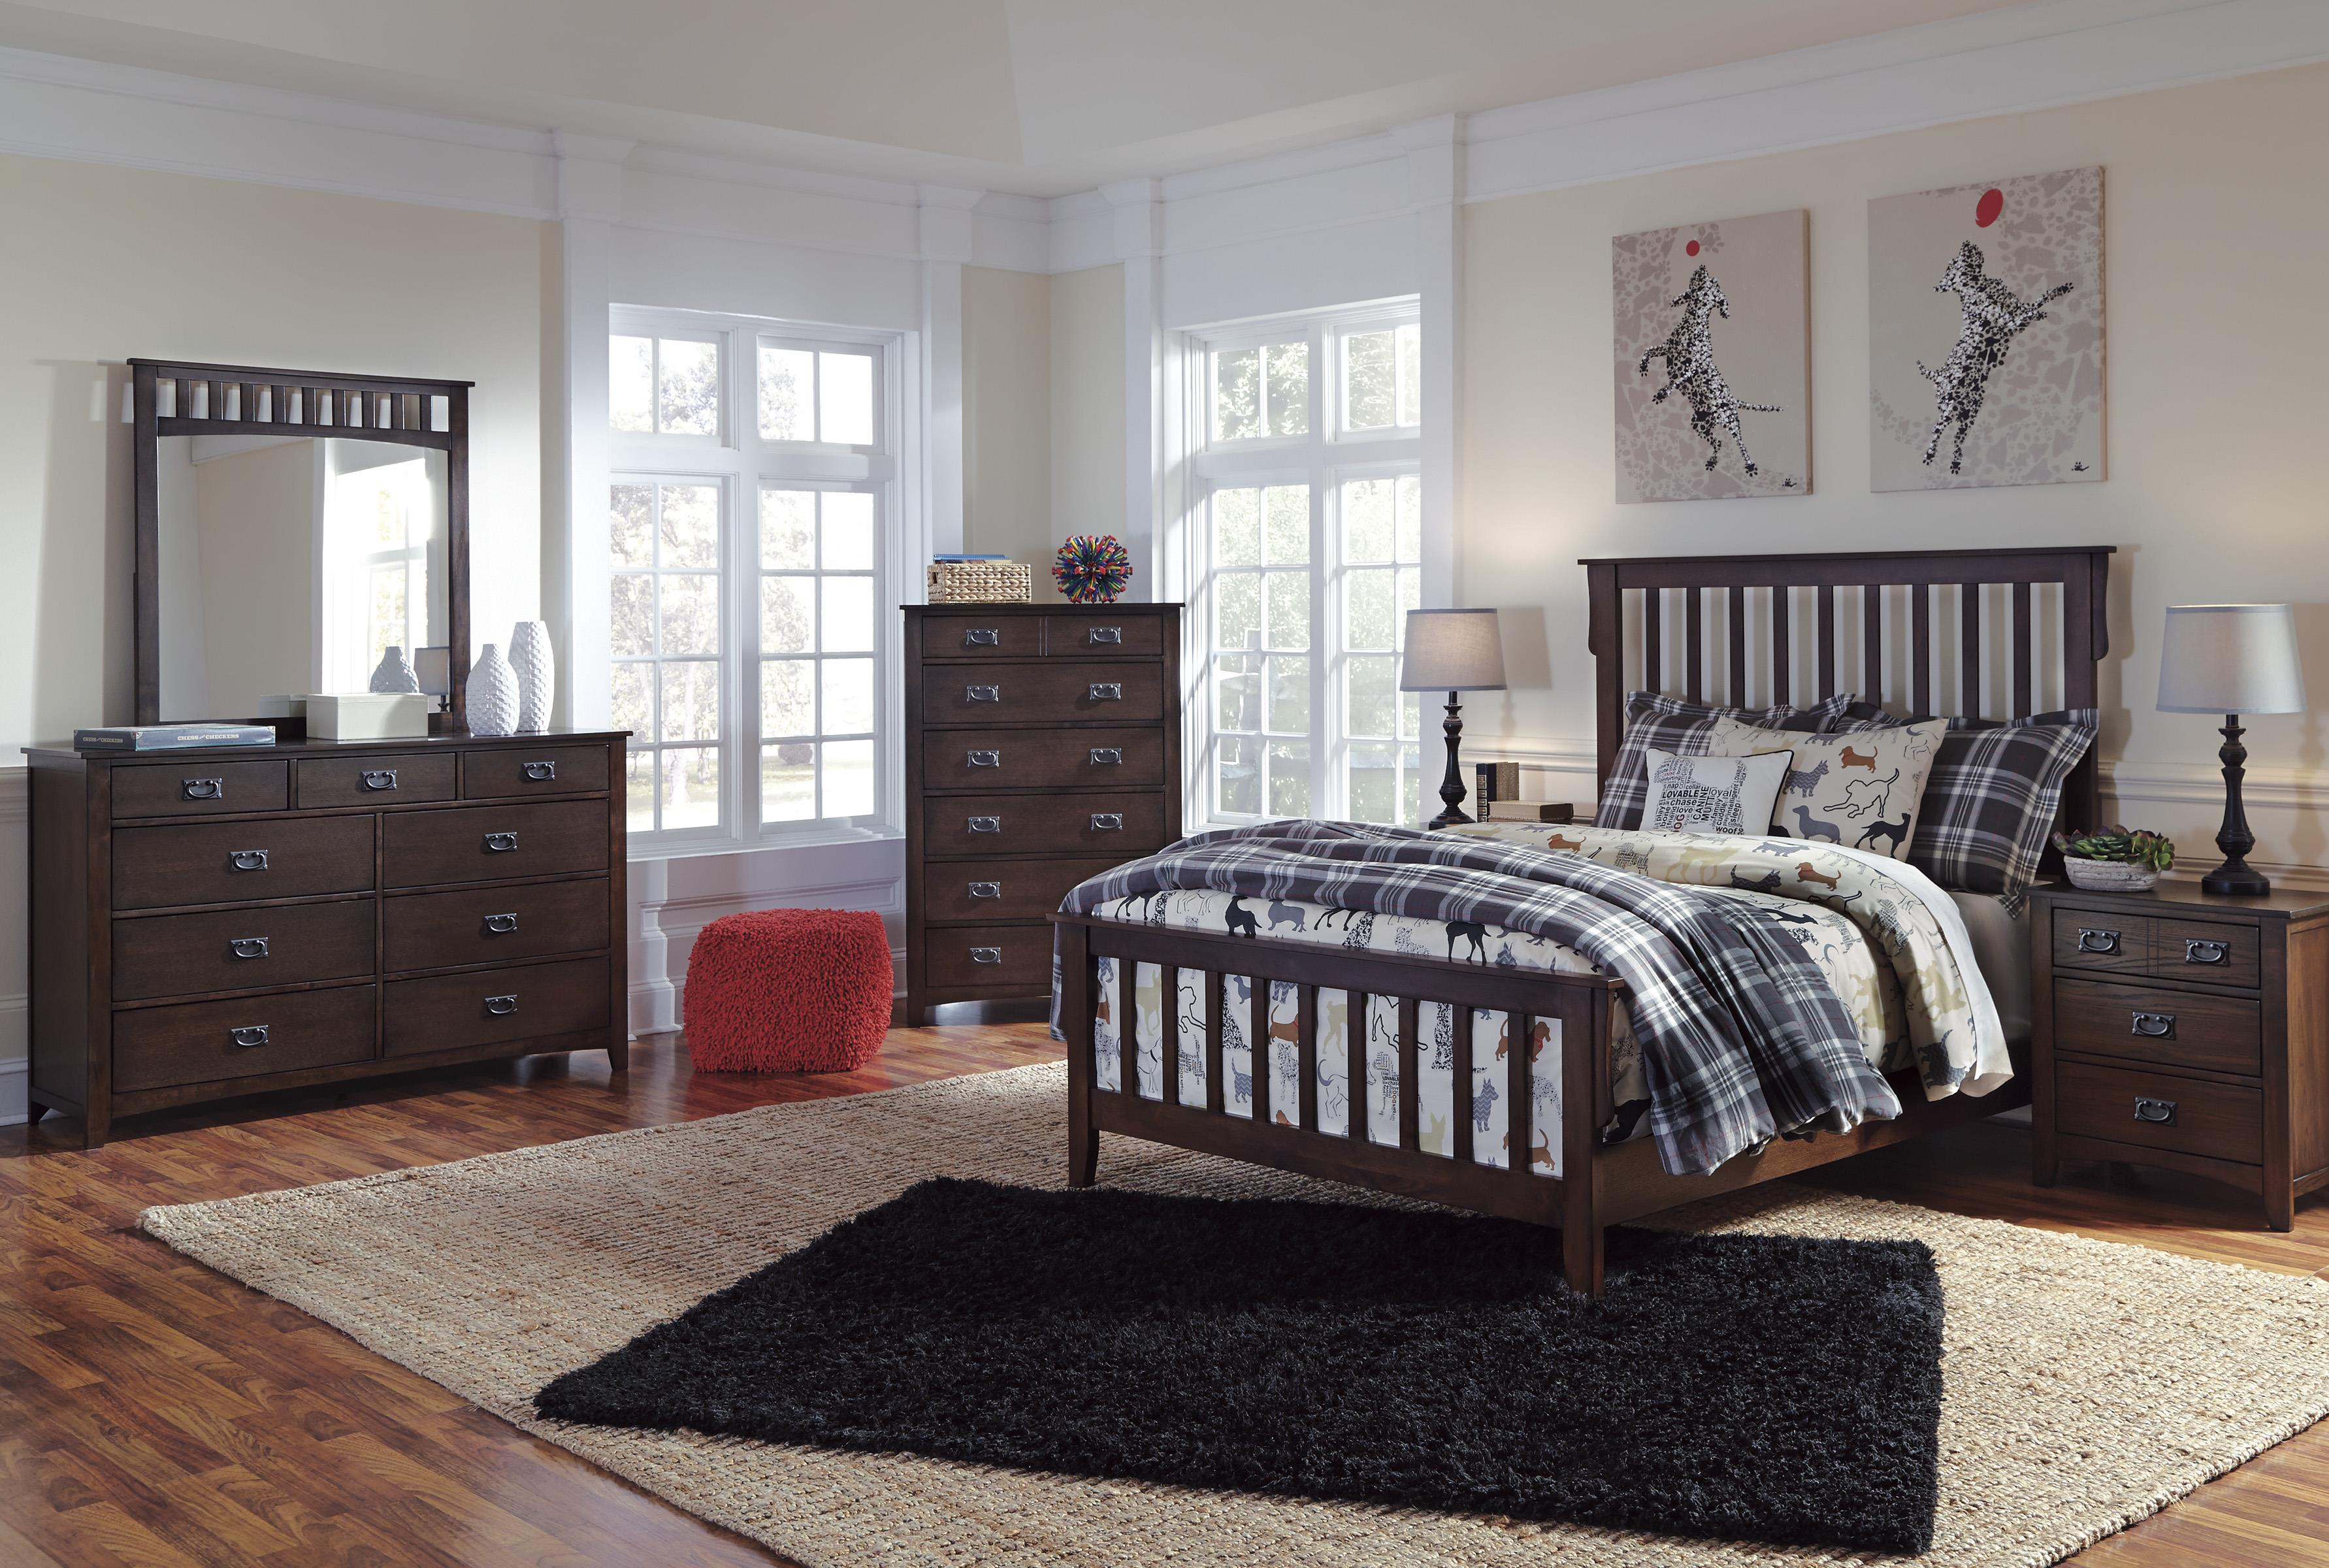 Signature Design by Ashley Strenton Full Bedroom Group - Item Number: B568 F Bedroom Group